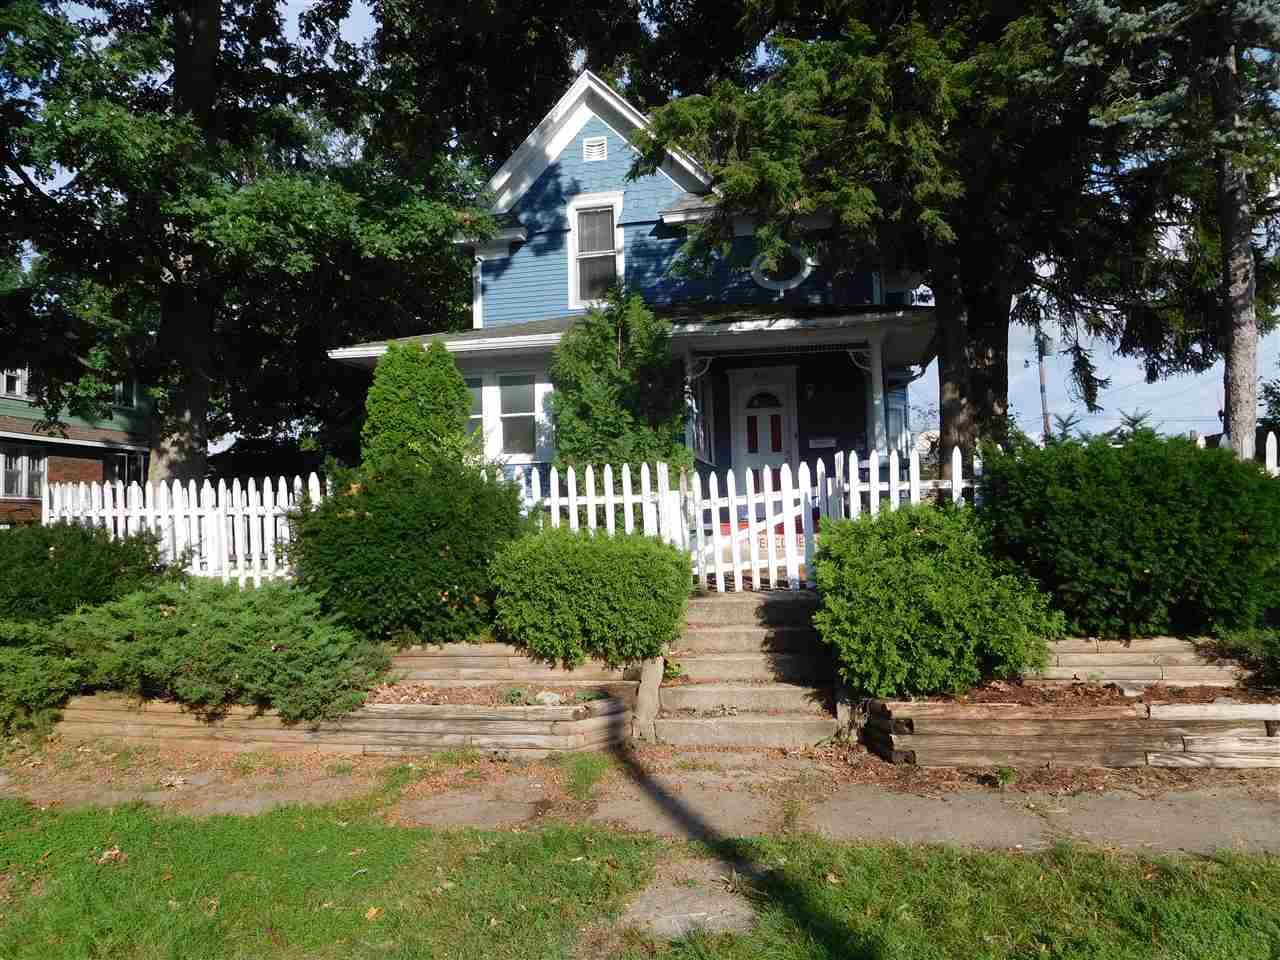 844 S 24th, South Bend, IN 46615